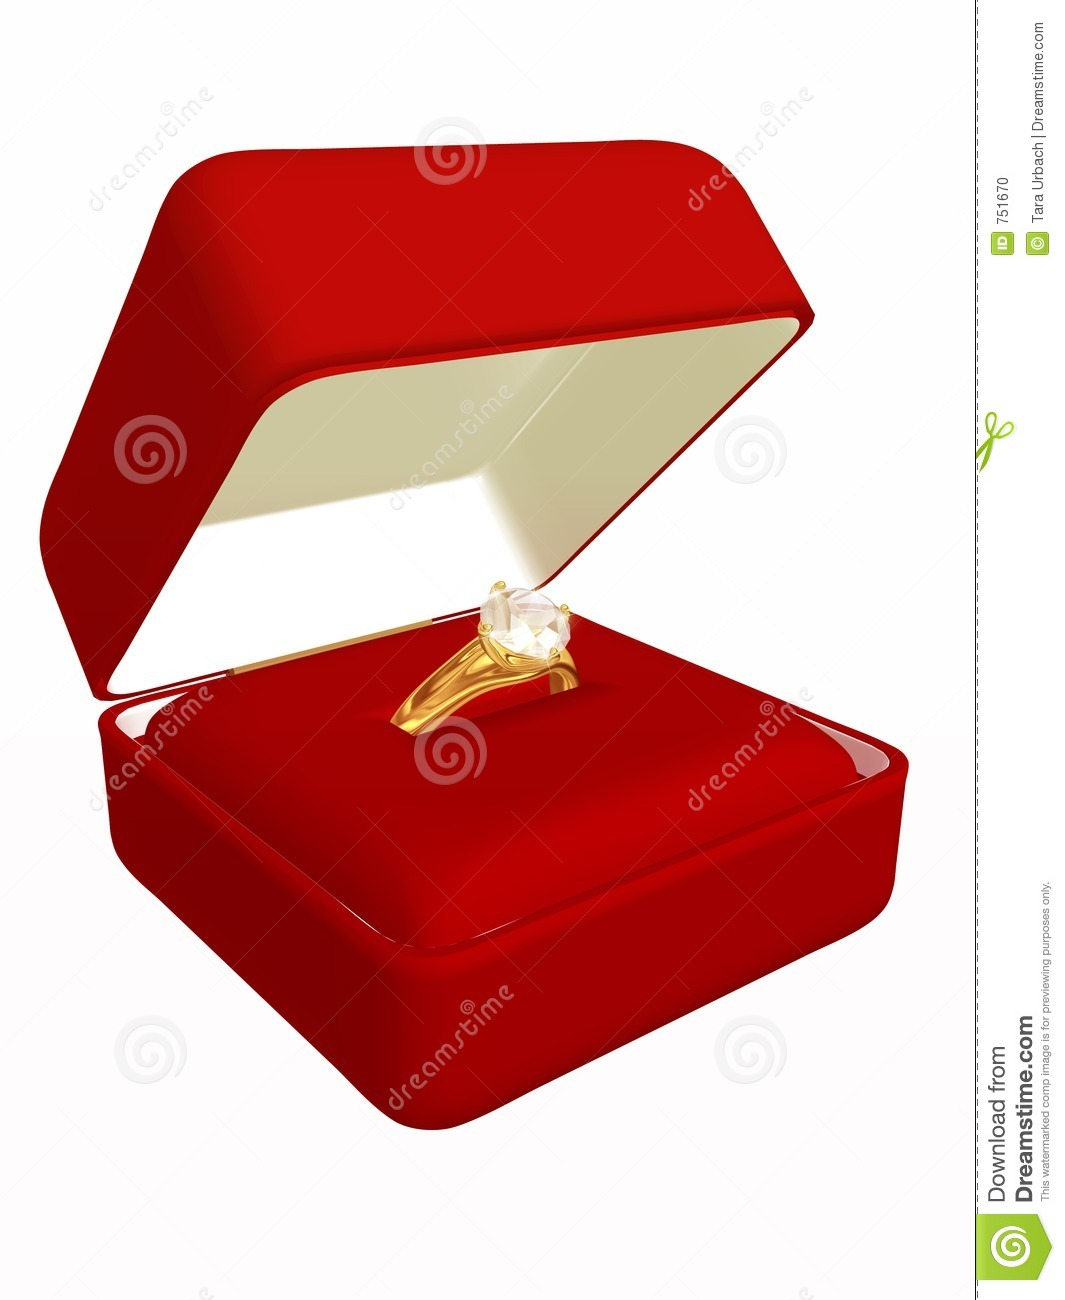 Diamond ring in case stock photo image 751670 for Ring case